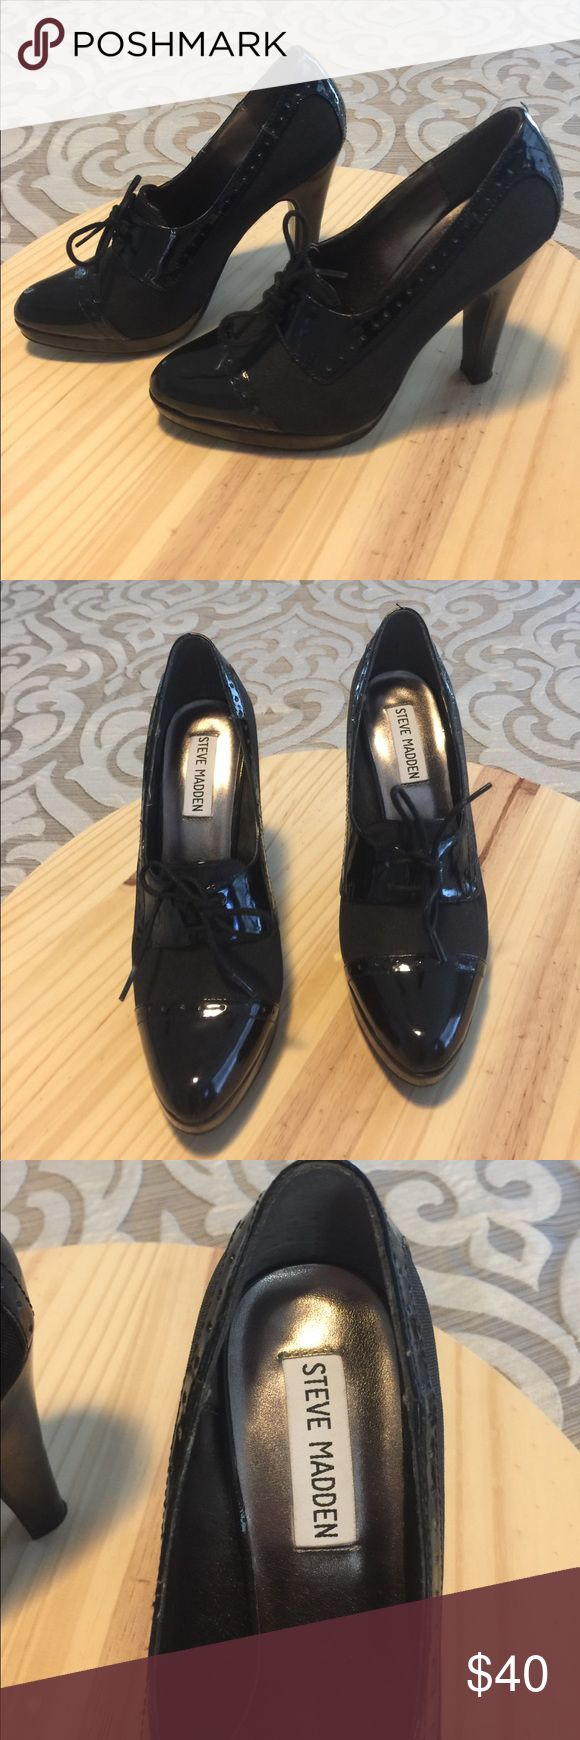 Steve Madden Reilly Black heels Steve Madden size 6M Reilly Black heels. Only worn once. Great used condition. Steve Madden Shoes Heels